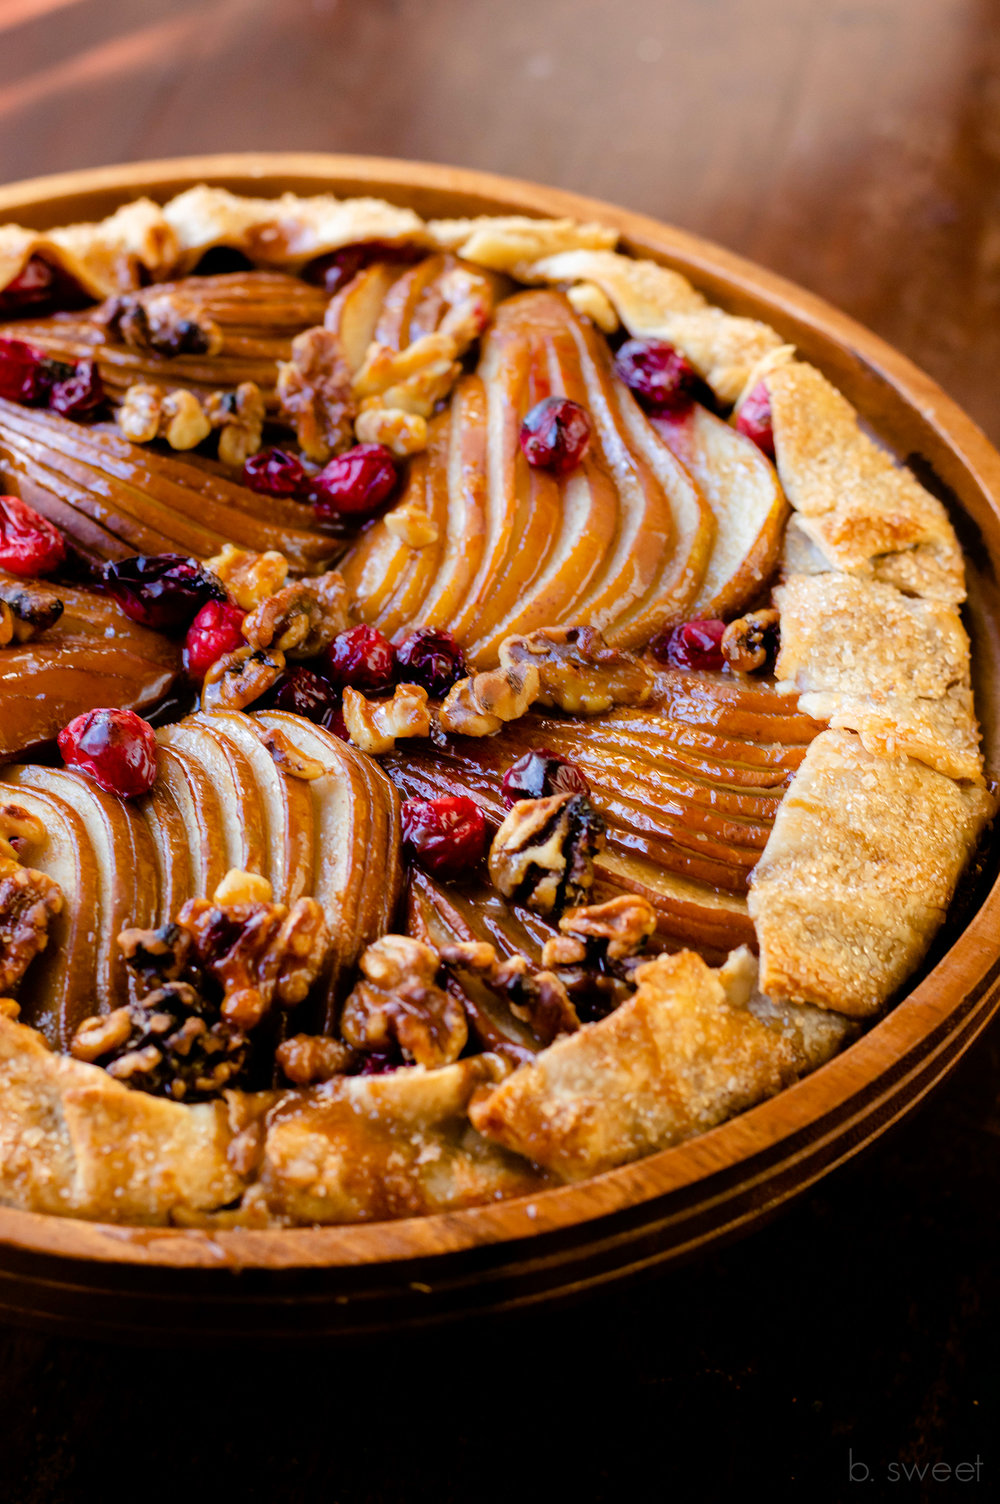 Spiced Caramel Pear Galette with Walnuts and Cranberries - b. sweet